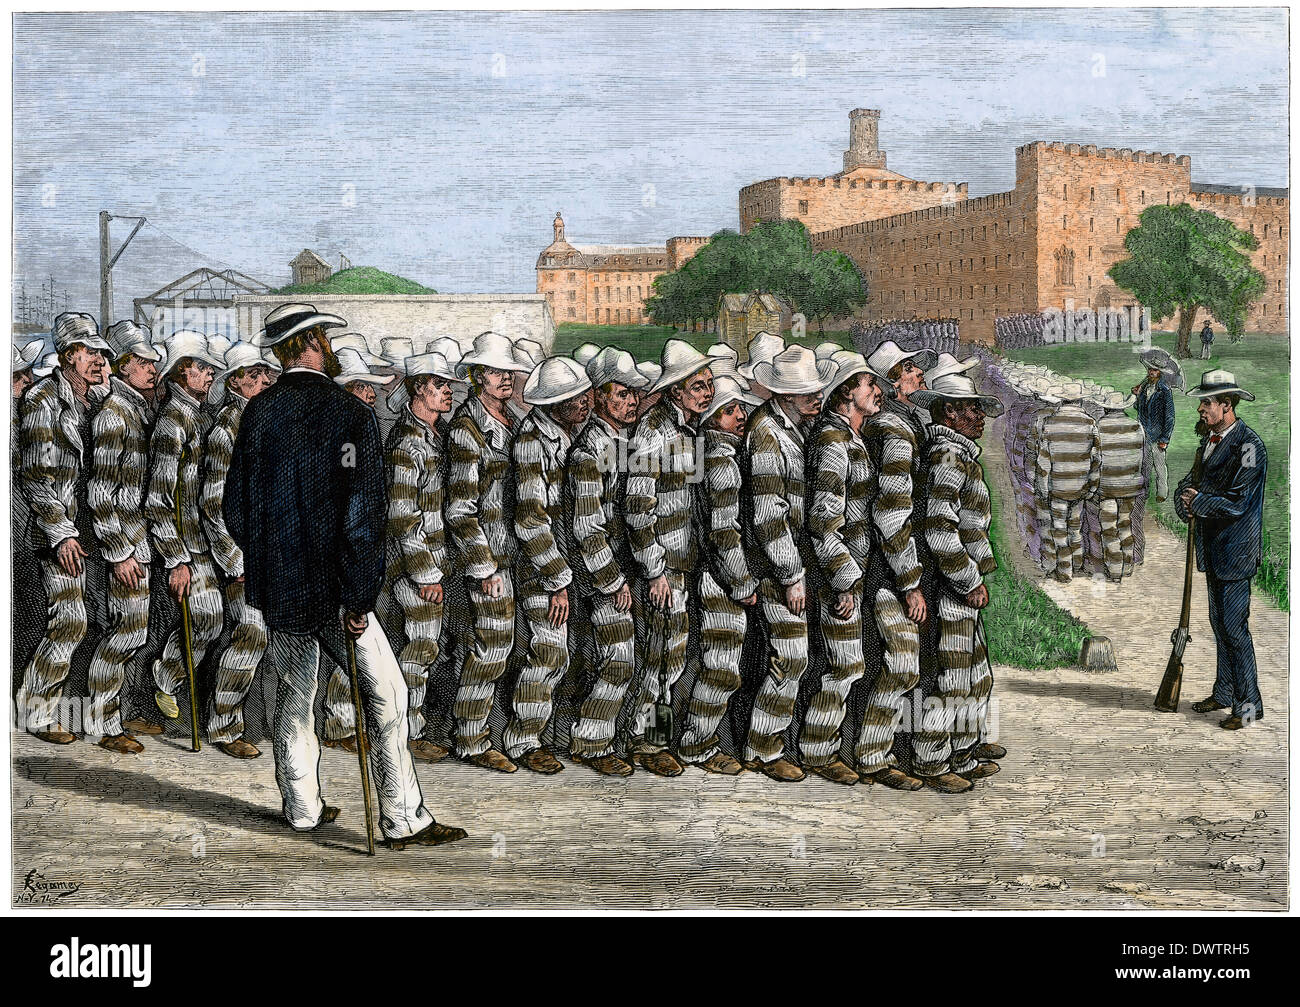 Prisoner work gang returning to Blackwell's Island penitentiary in New York harbor, 1870s. Hand-colored woodcut - Stock Image